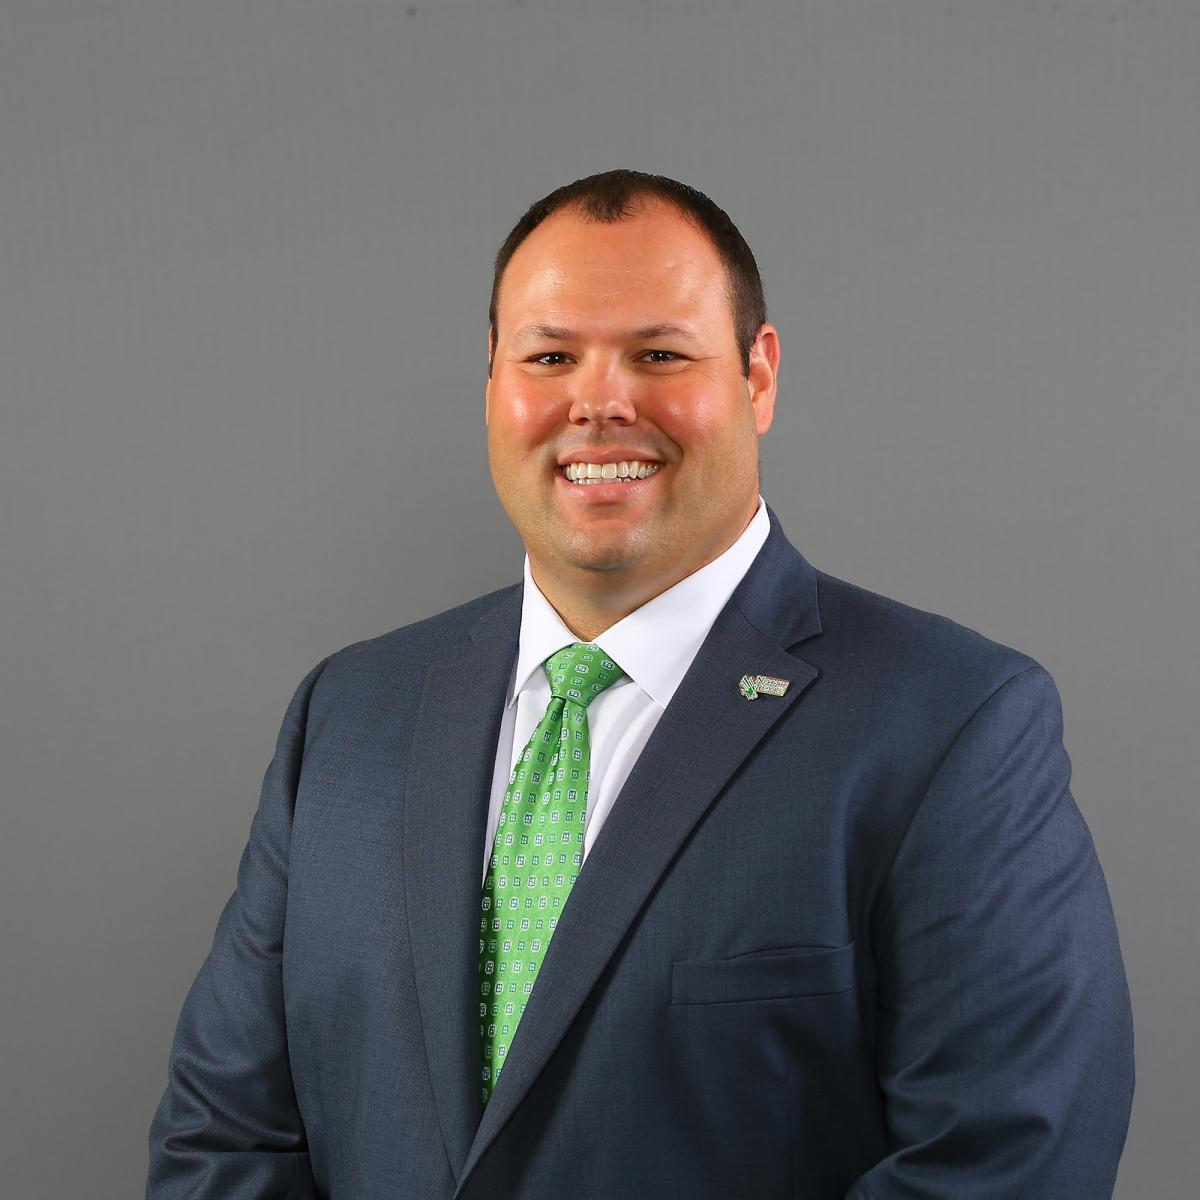 Wren Baker, Vice President and Director of Athletics for UNT